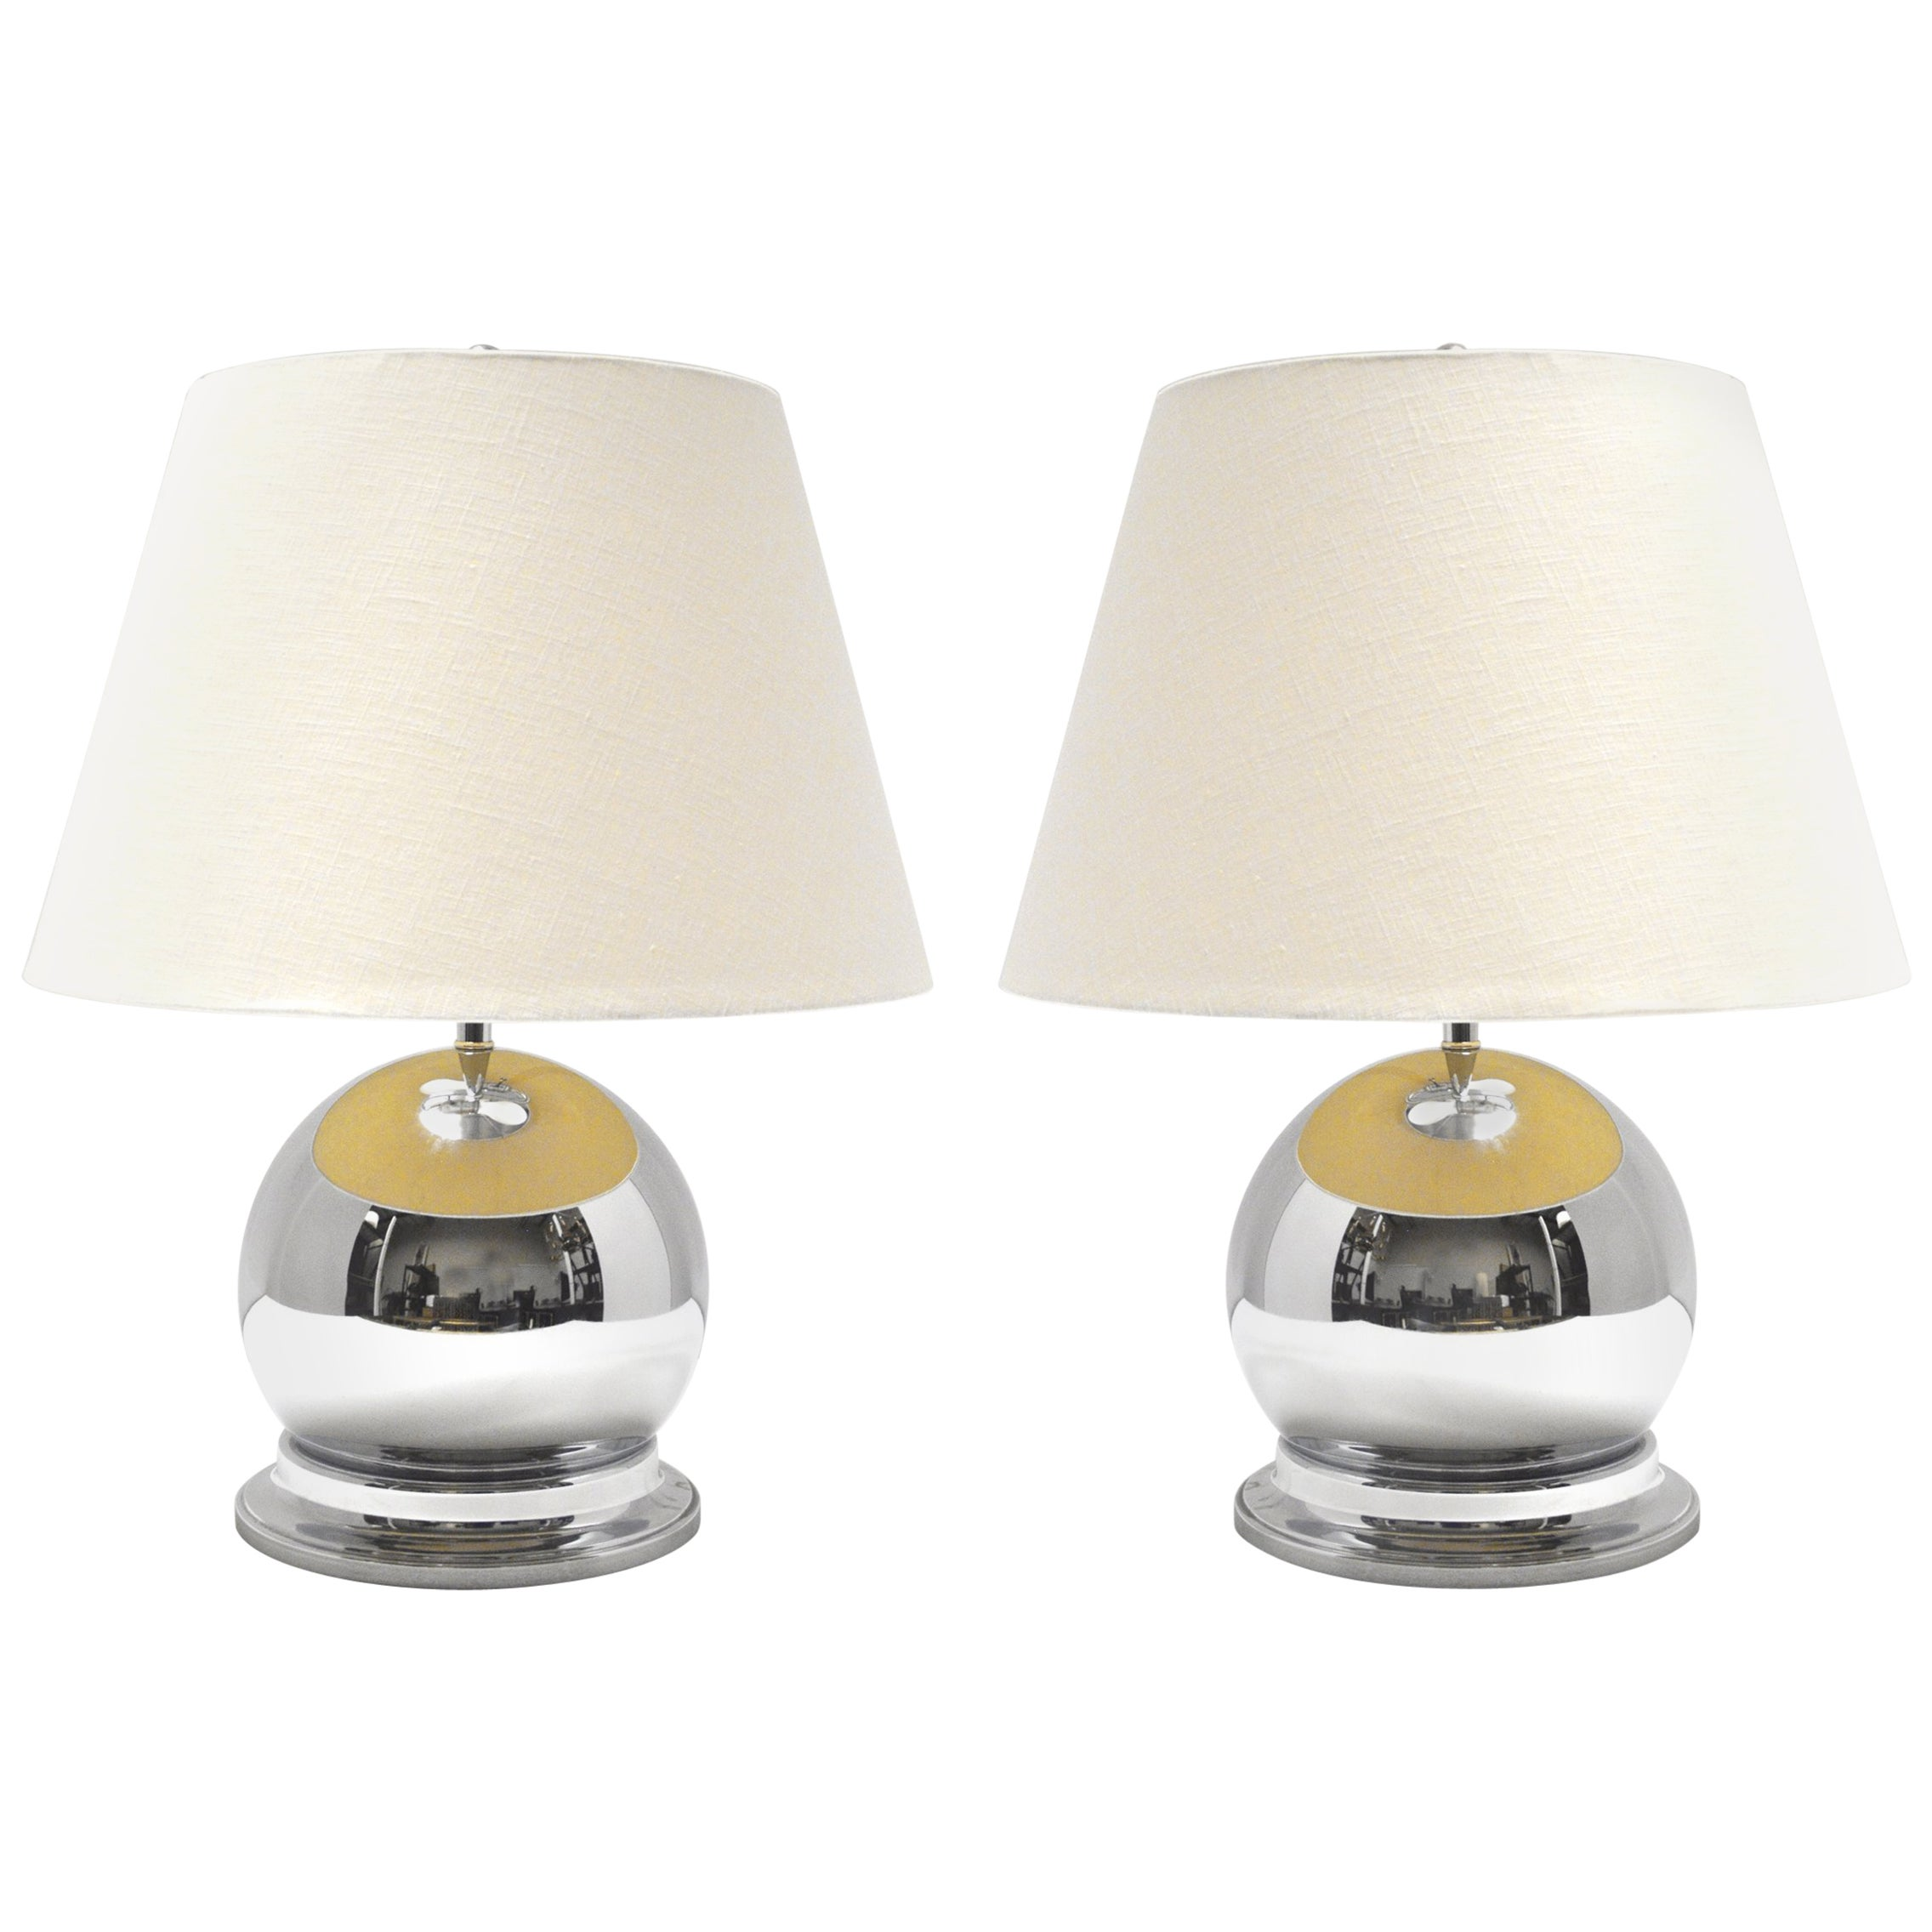 Pair of 1980s Chrome Ball Lamps